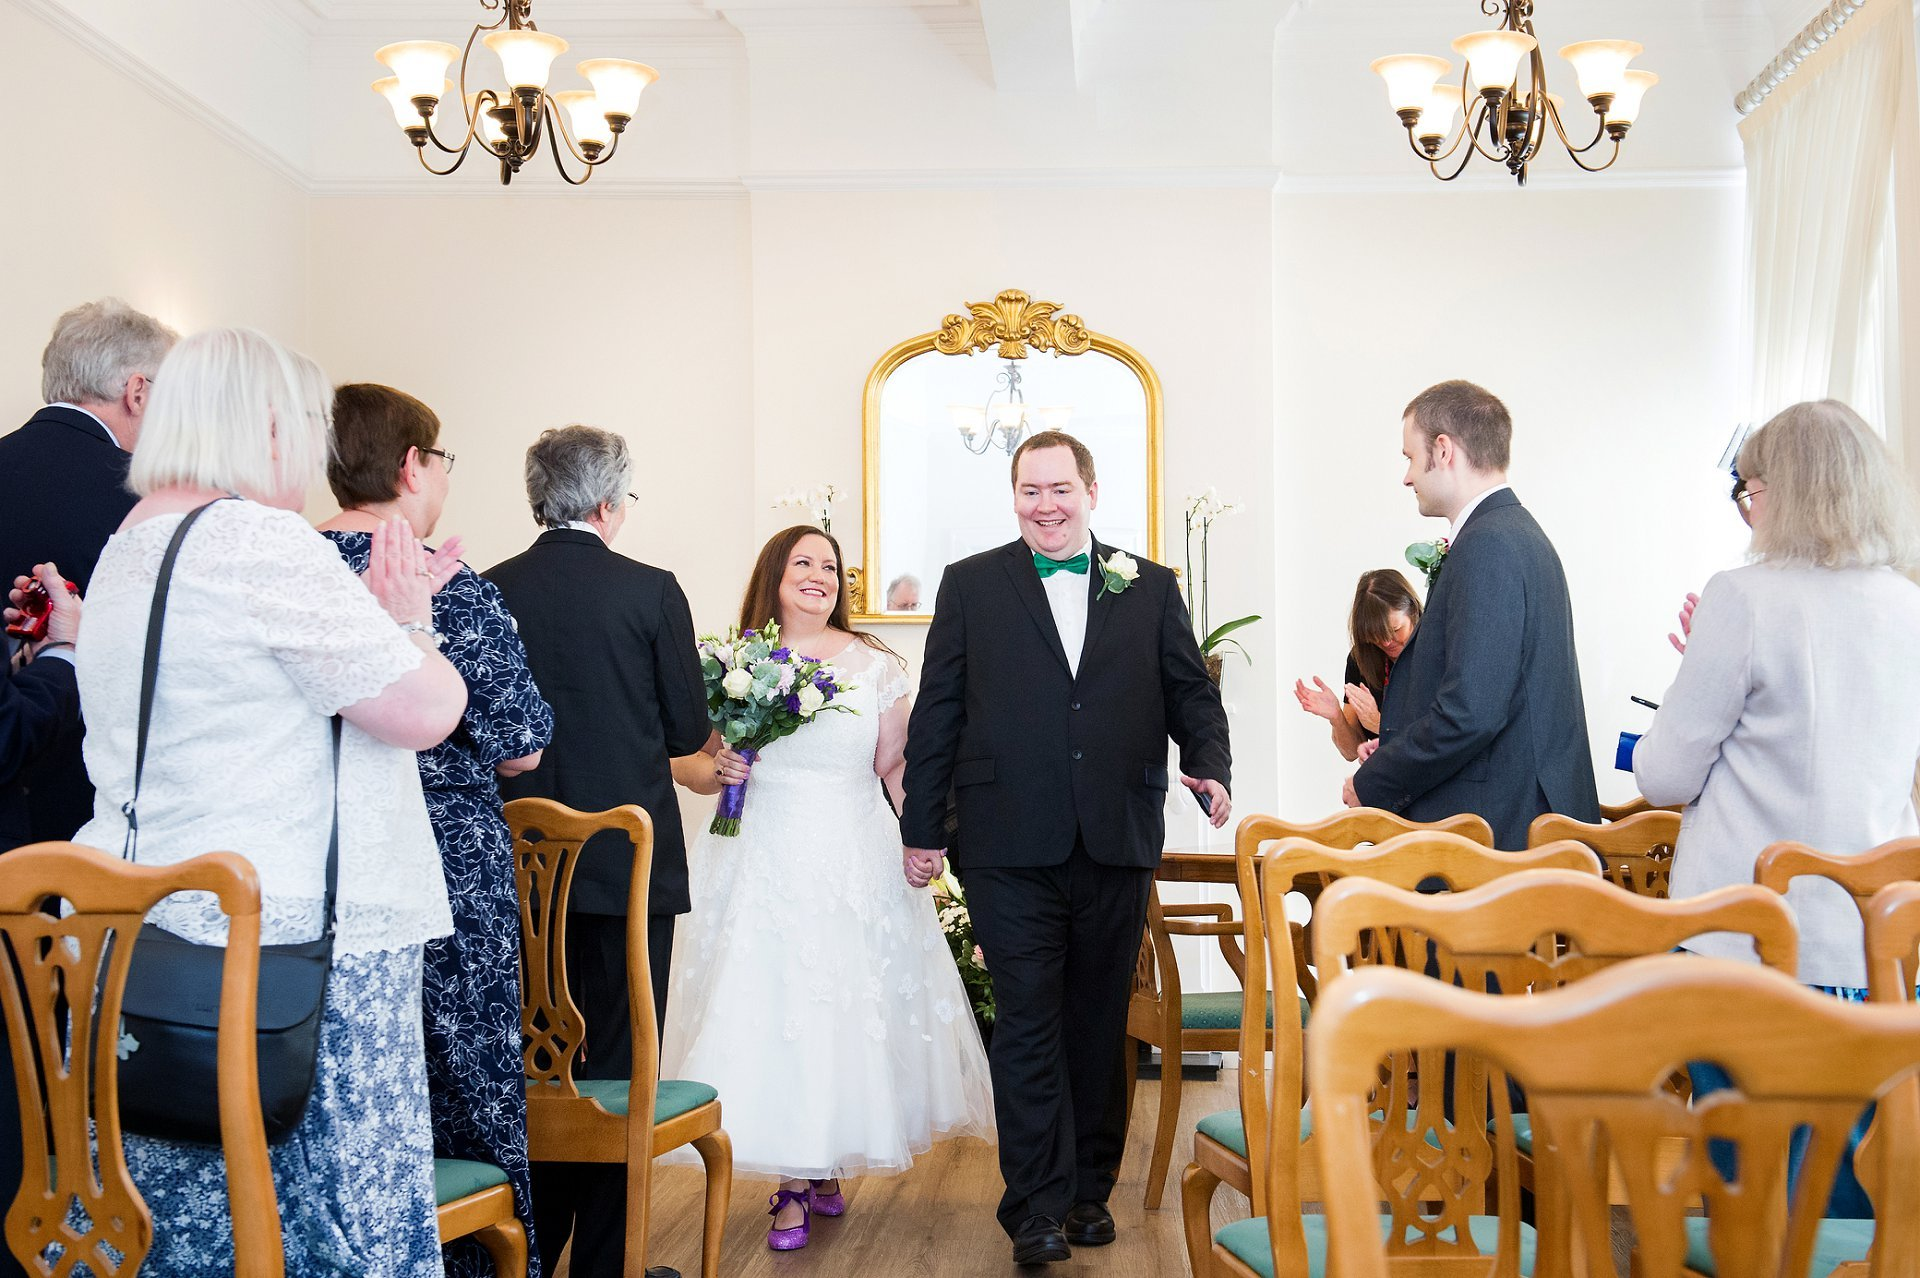 Woolwich Town Hall wedding photographer Emma Duggan captures the bride and groom leaving as husband and wife